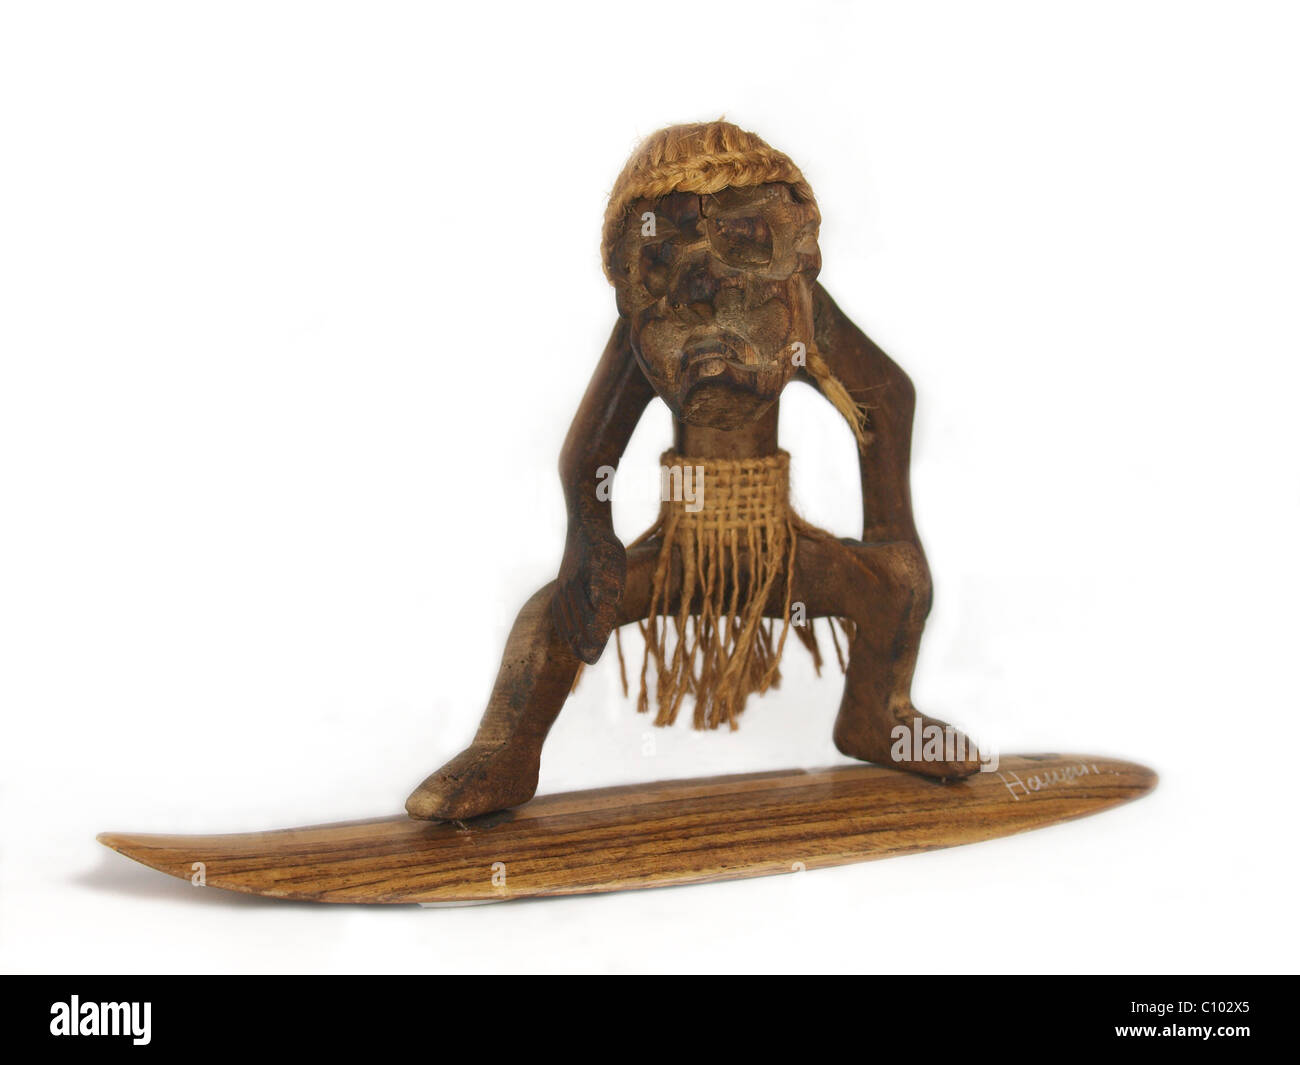 Tourist memento of a surfer from Hawaii - Stock Image